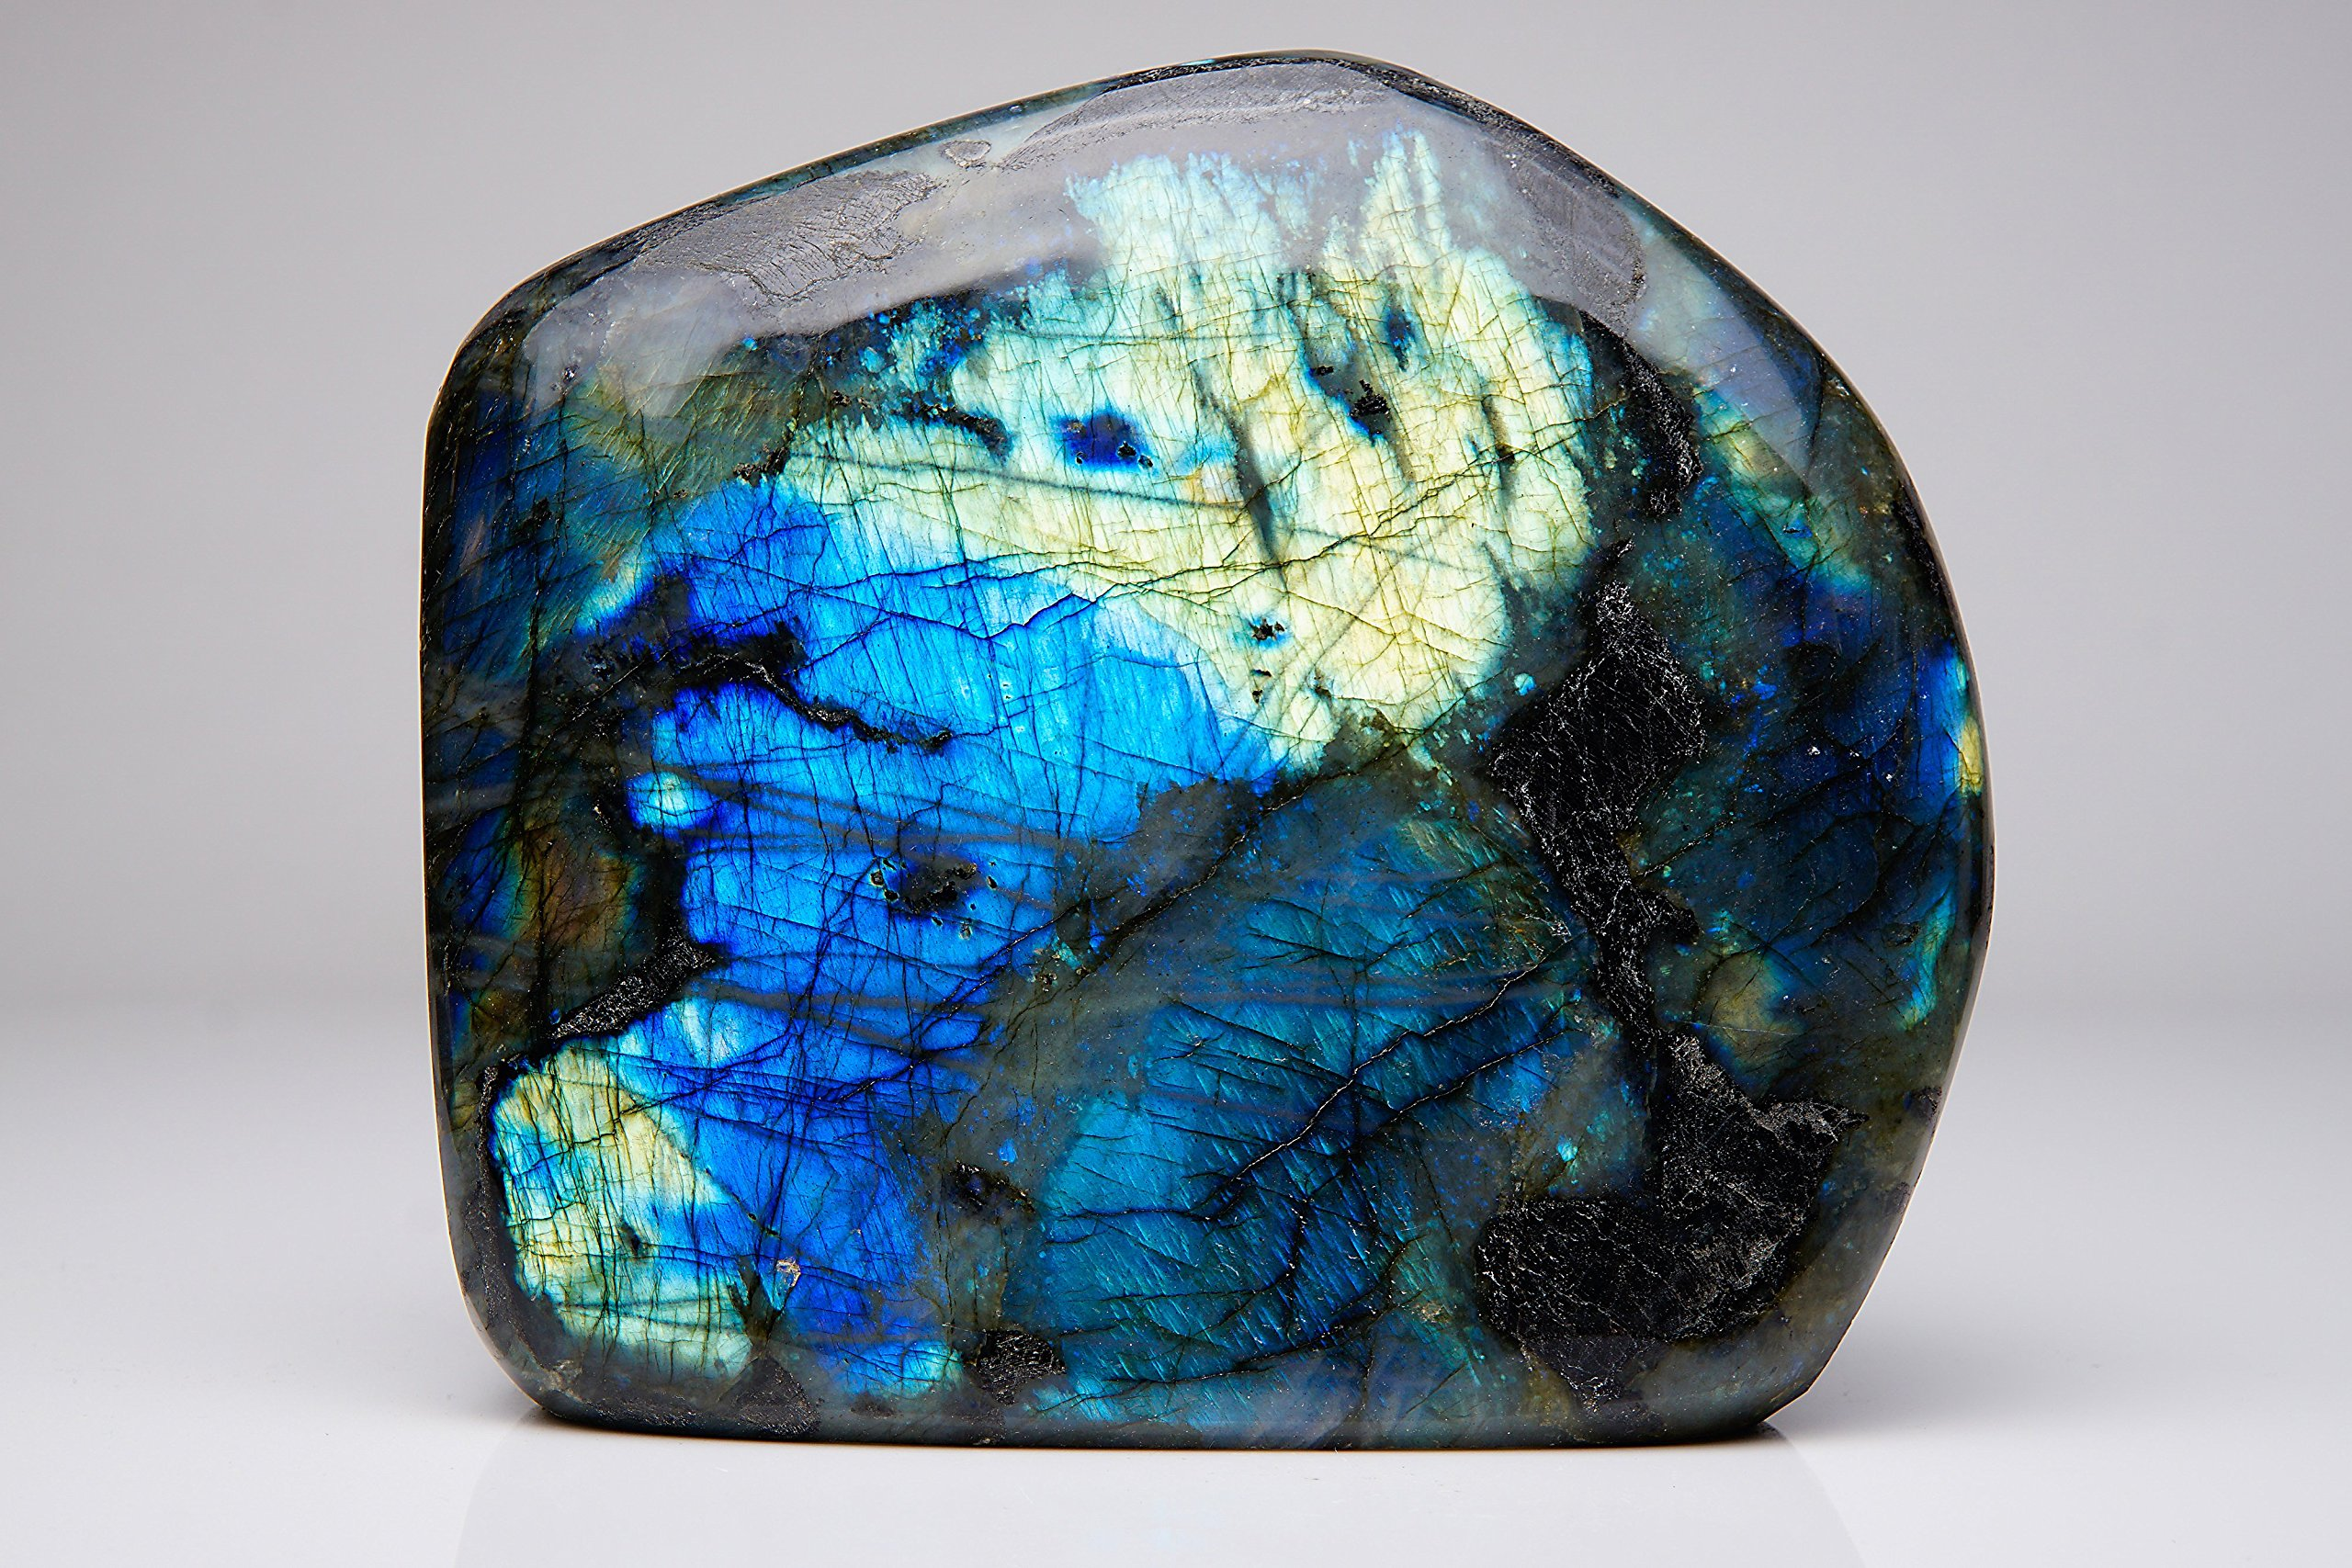 Astro Gallery Of Gems Polished Labradorite Freefrom -  6. 5 LBS by Astro Gallery Of Gems